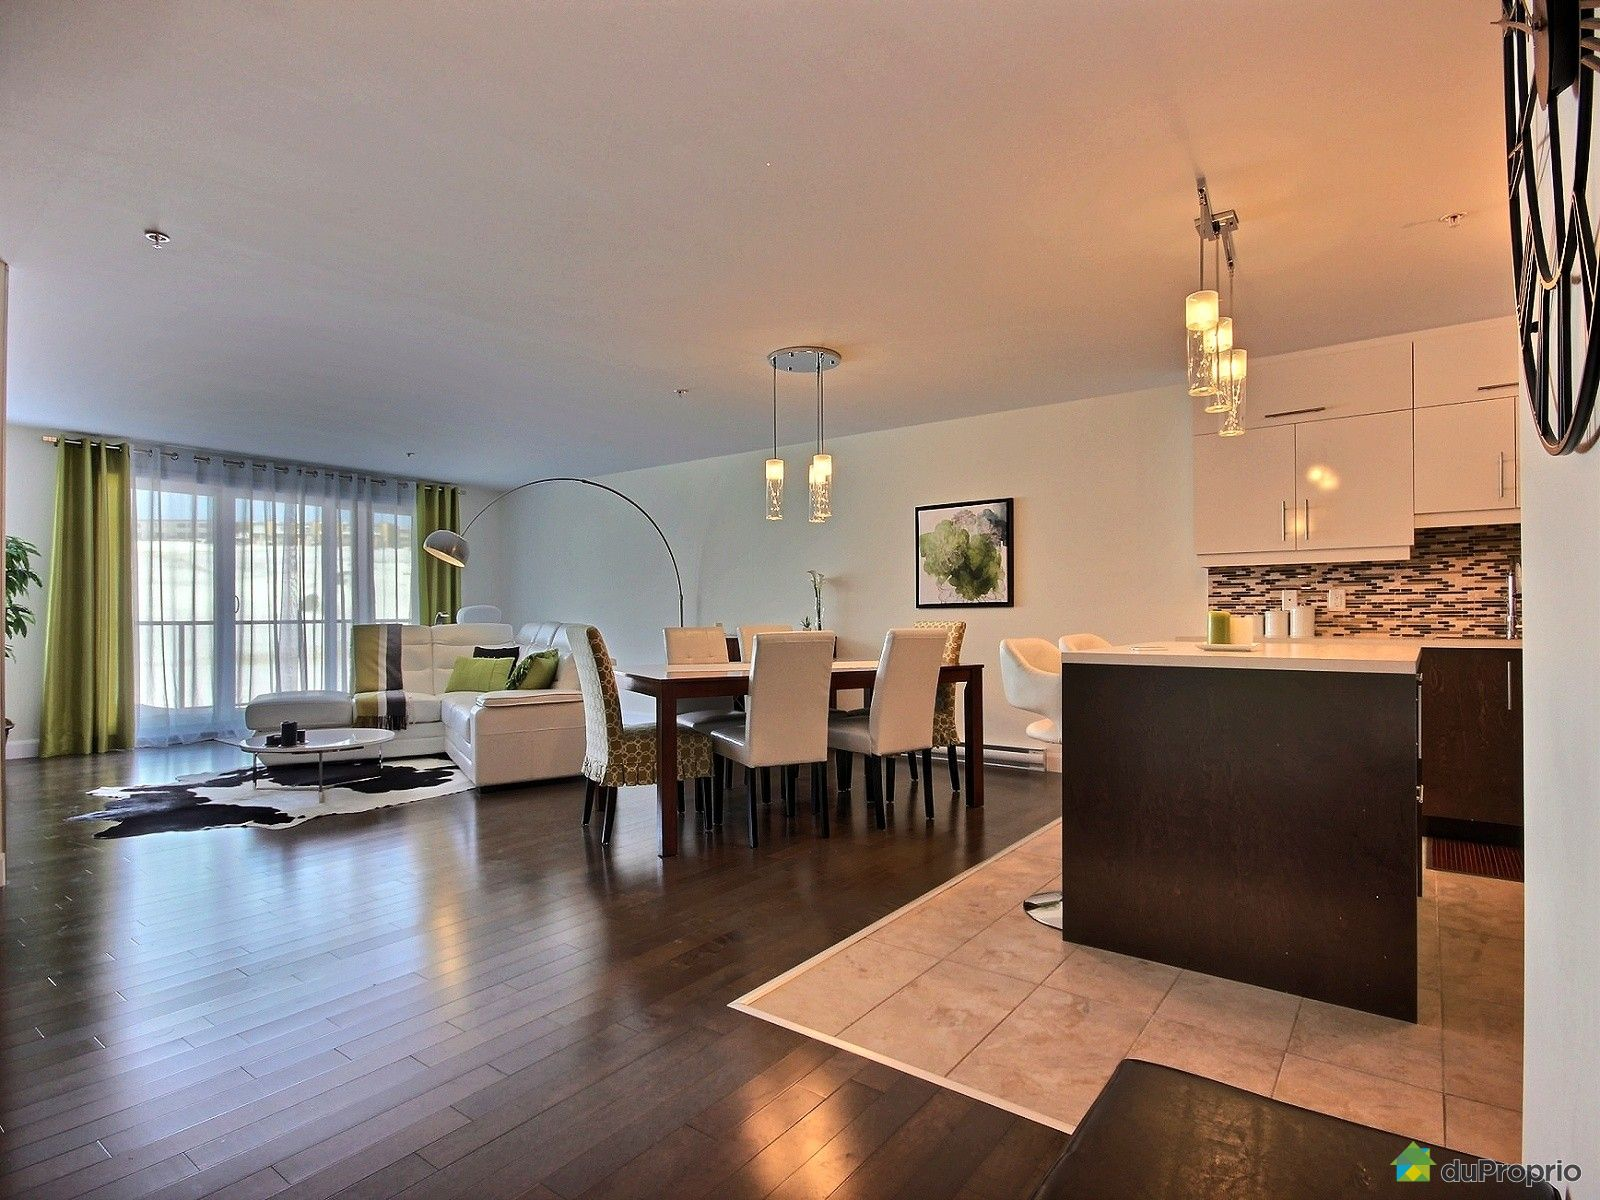 Condo sold in beauport duproprio 584130 for Miroir concept beauport